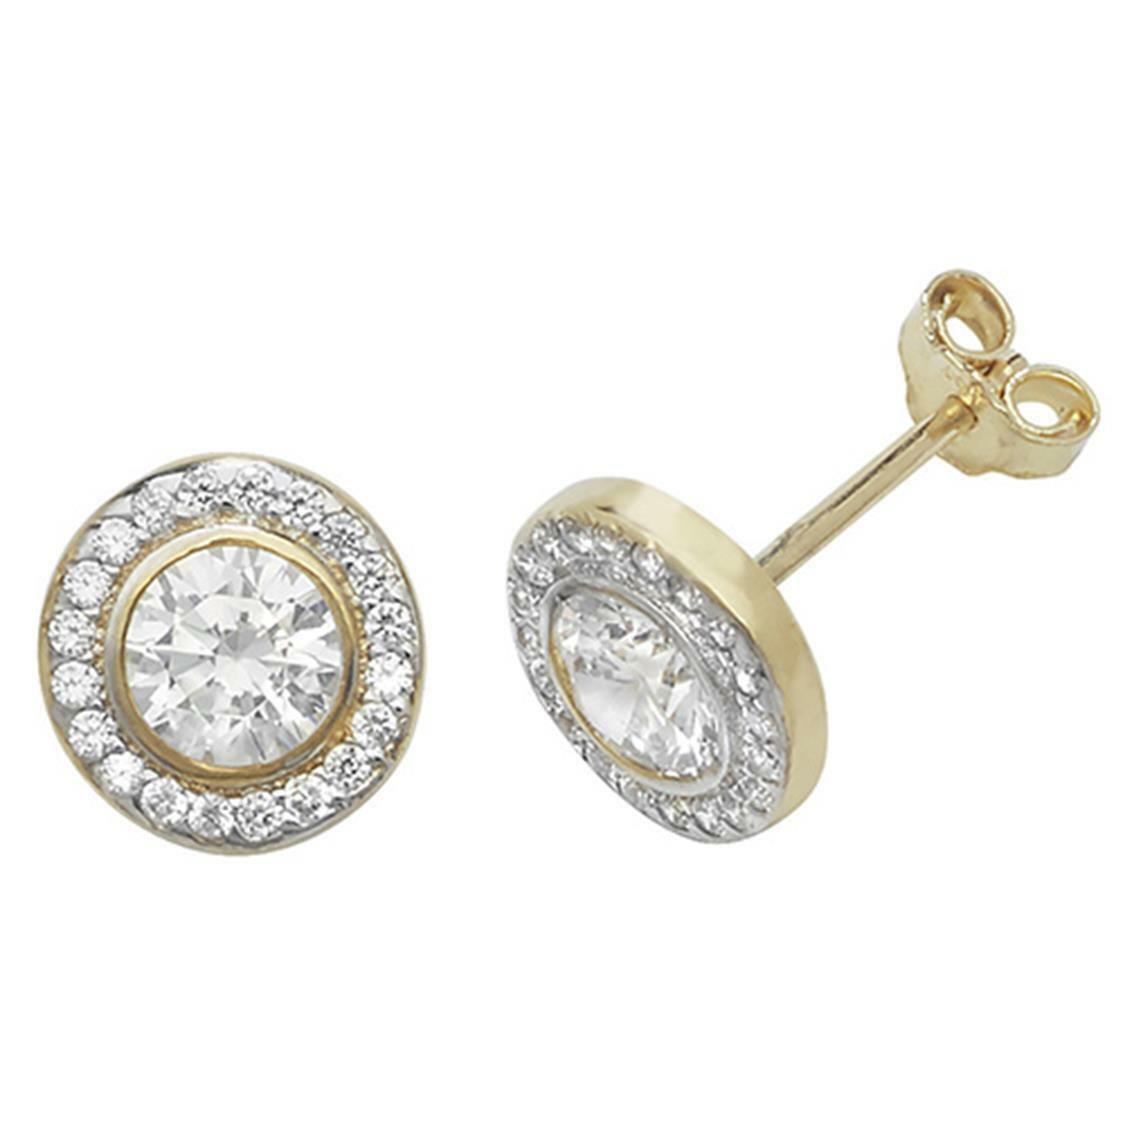 New Hallmarked Small 9ct Yellow gold CZ Stud Earrings Round Earring ES474